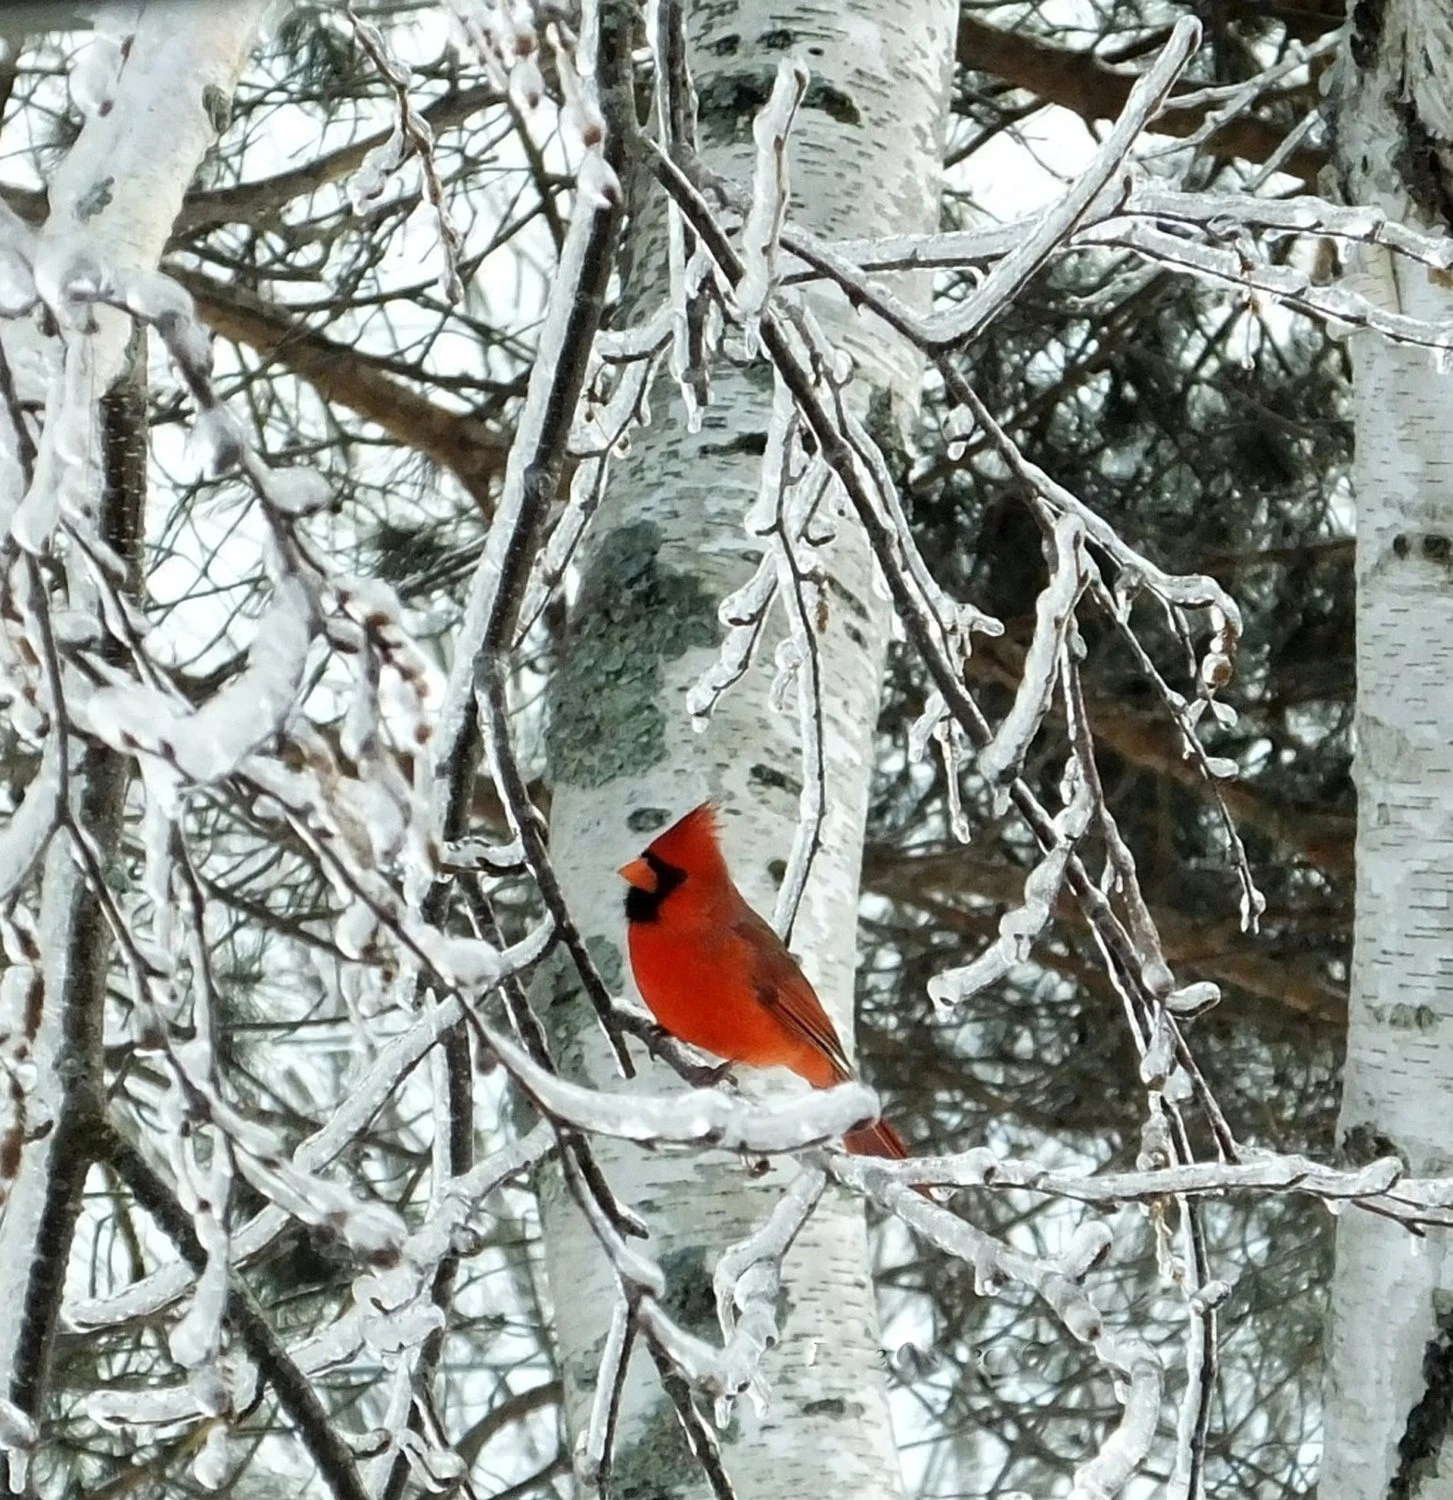 Fall Landscape Wallpaper Desktop Ice Age Cardinal Ice Covered Tree Maine Ice Storm White